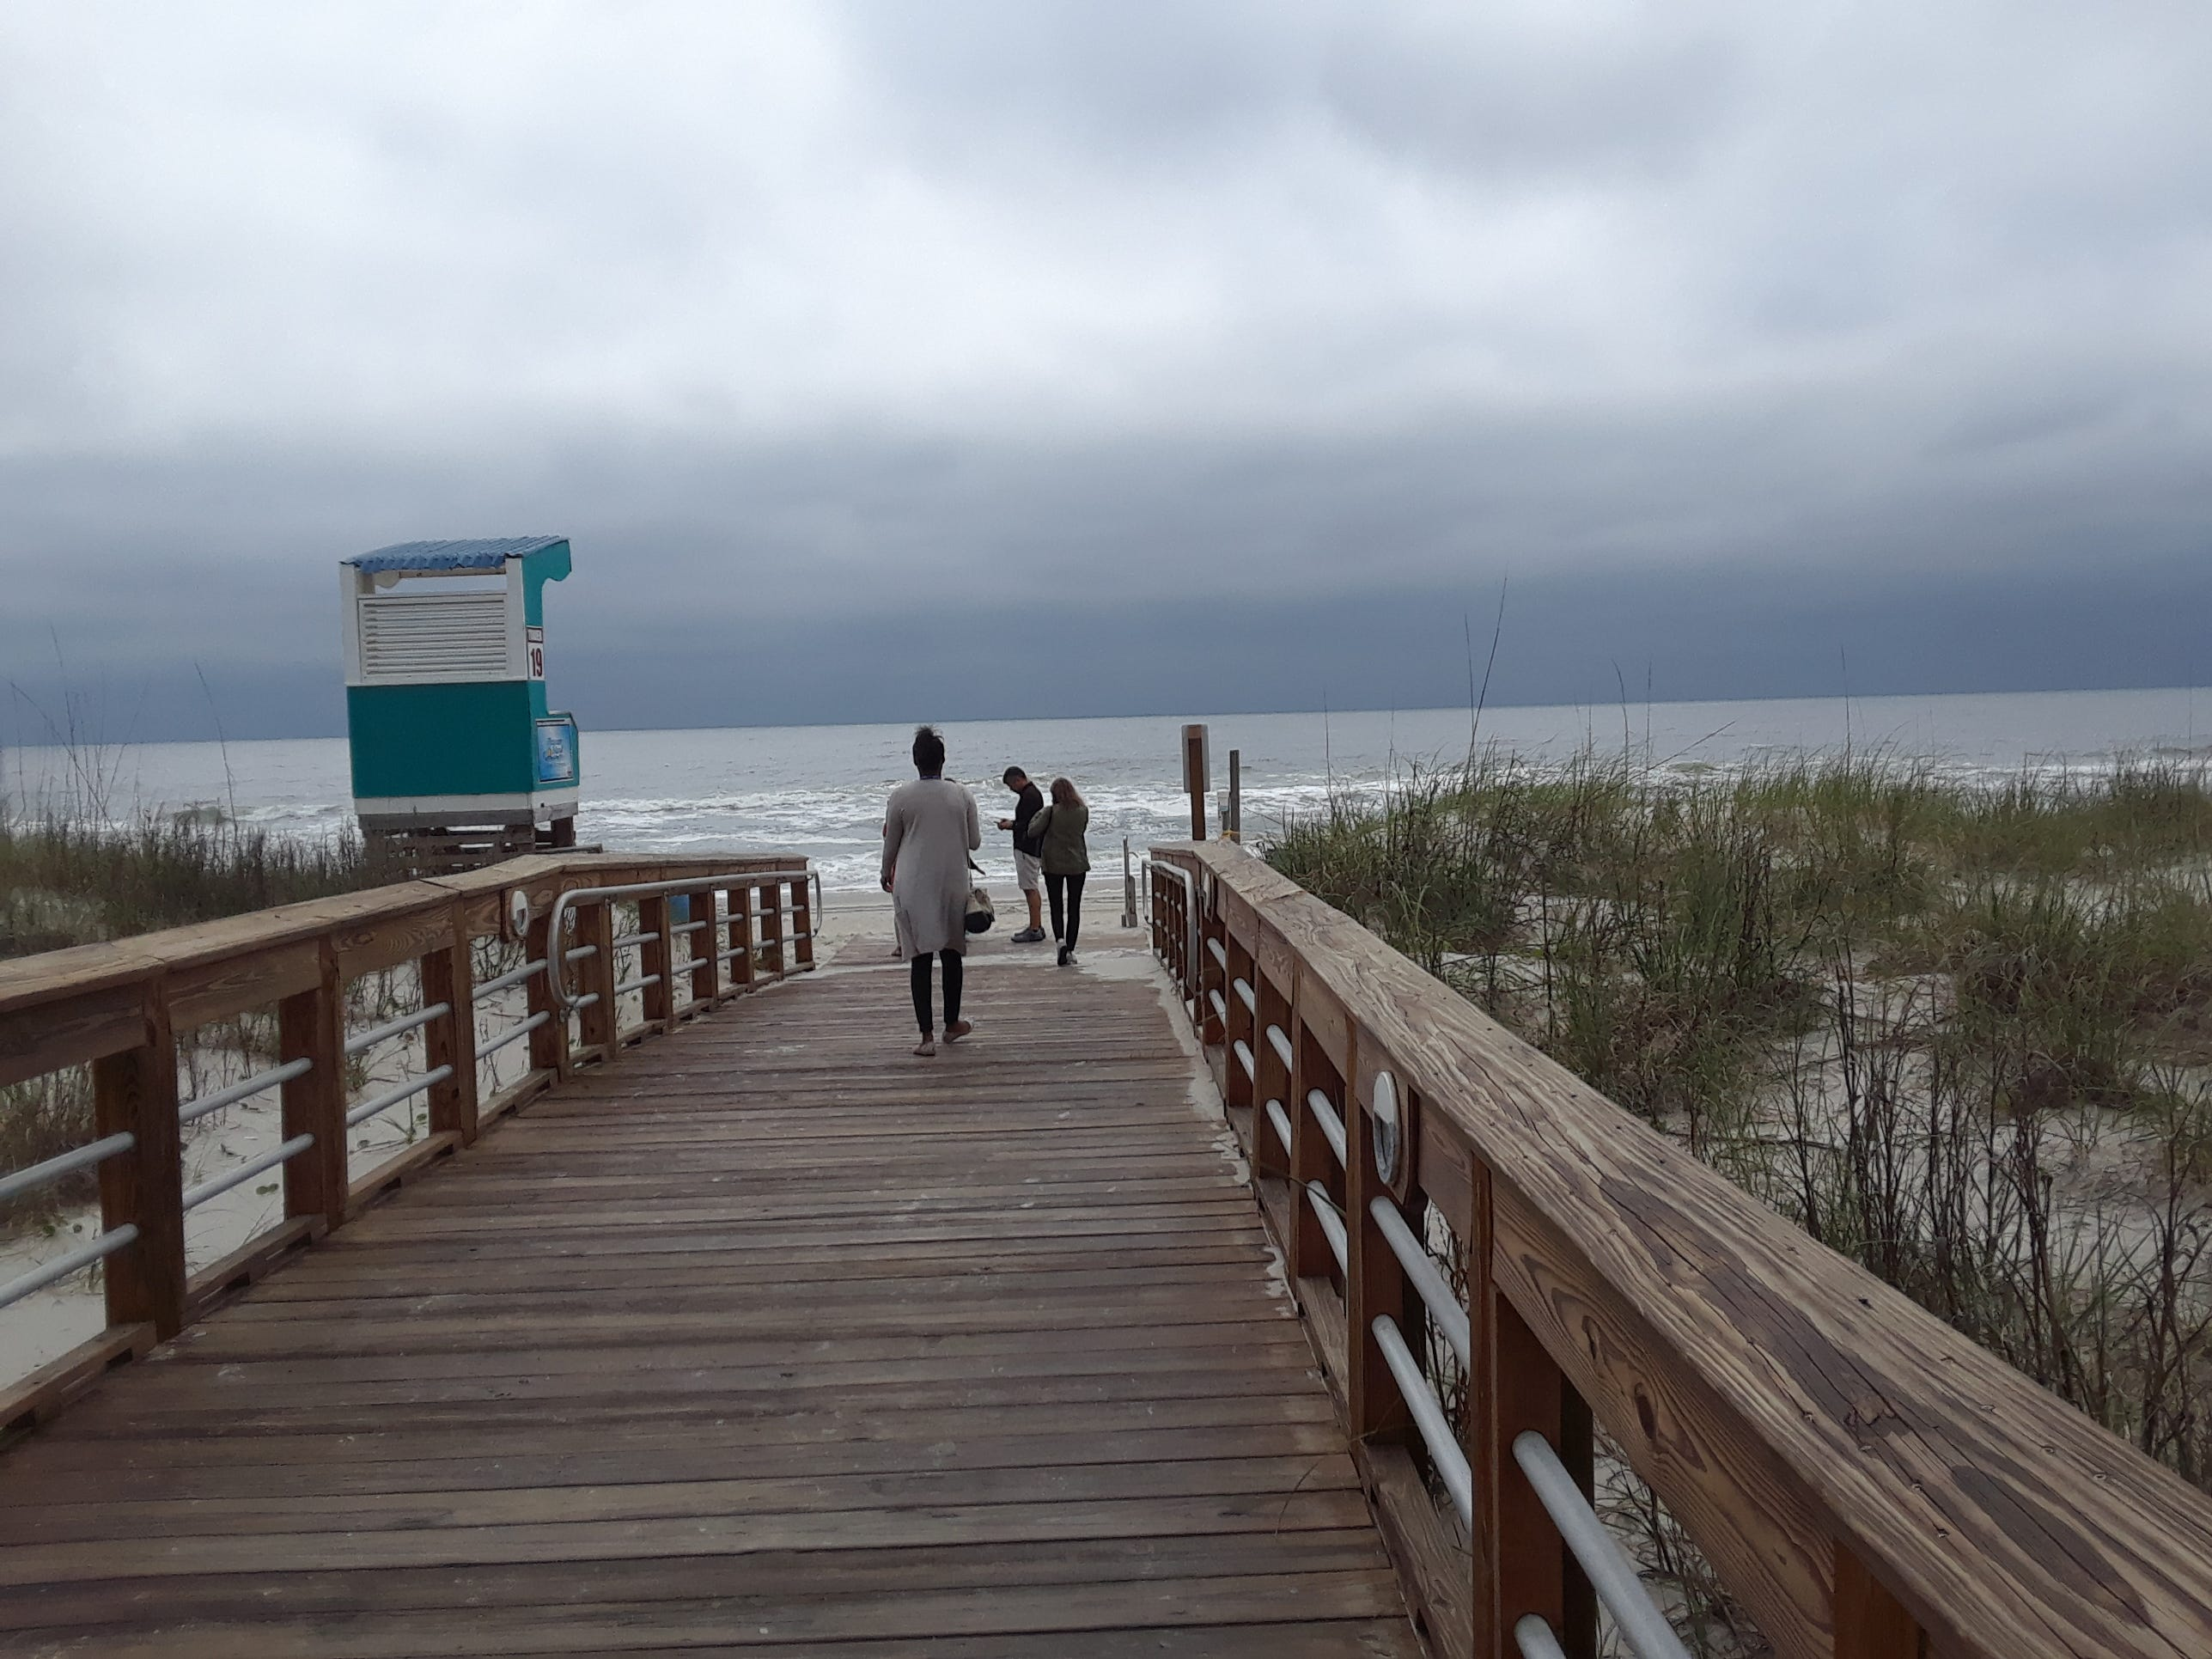 Wilmington is on a narrow peninsula on the Cape Fear River, a bridge across the Intracoastal Waterway from Atlantic-facing Wrightsville Beach. To the immediate south are Carolina Beach and Kure Beach.